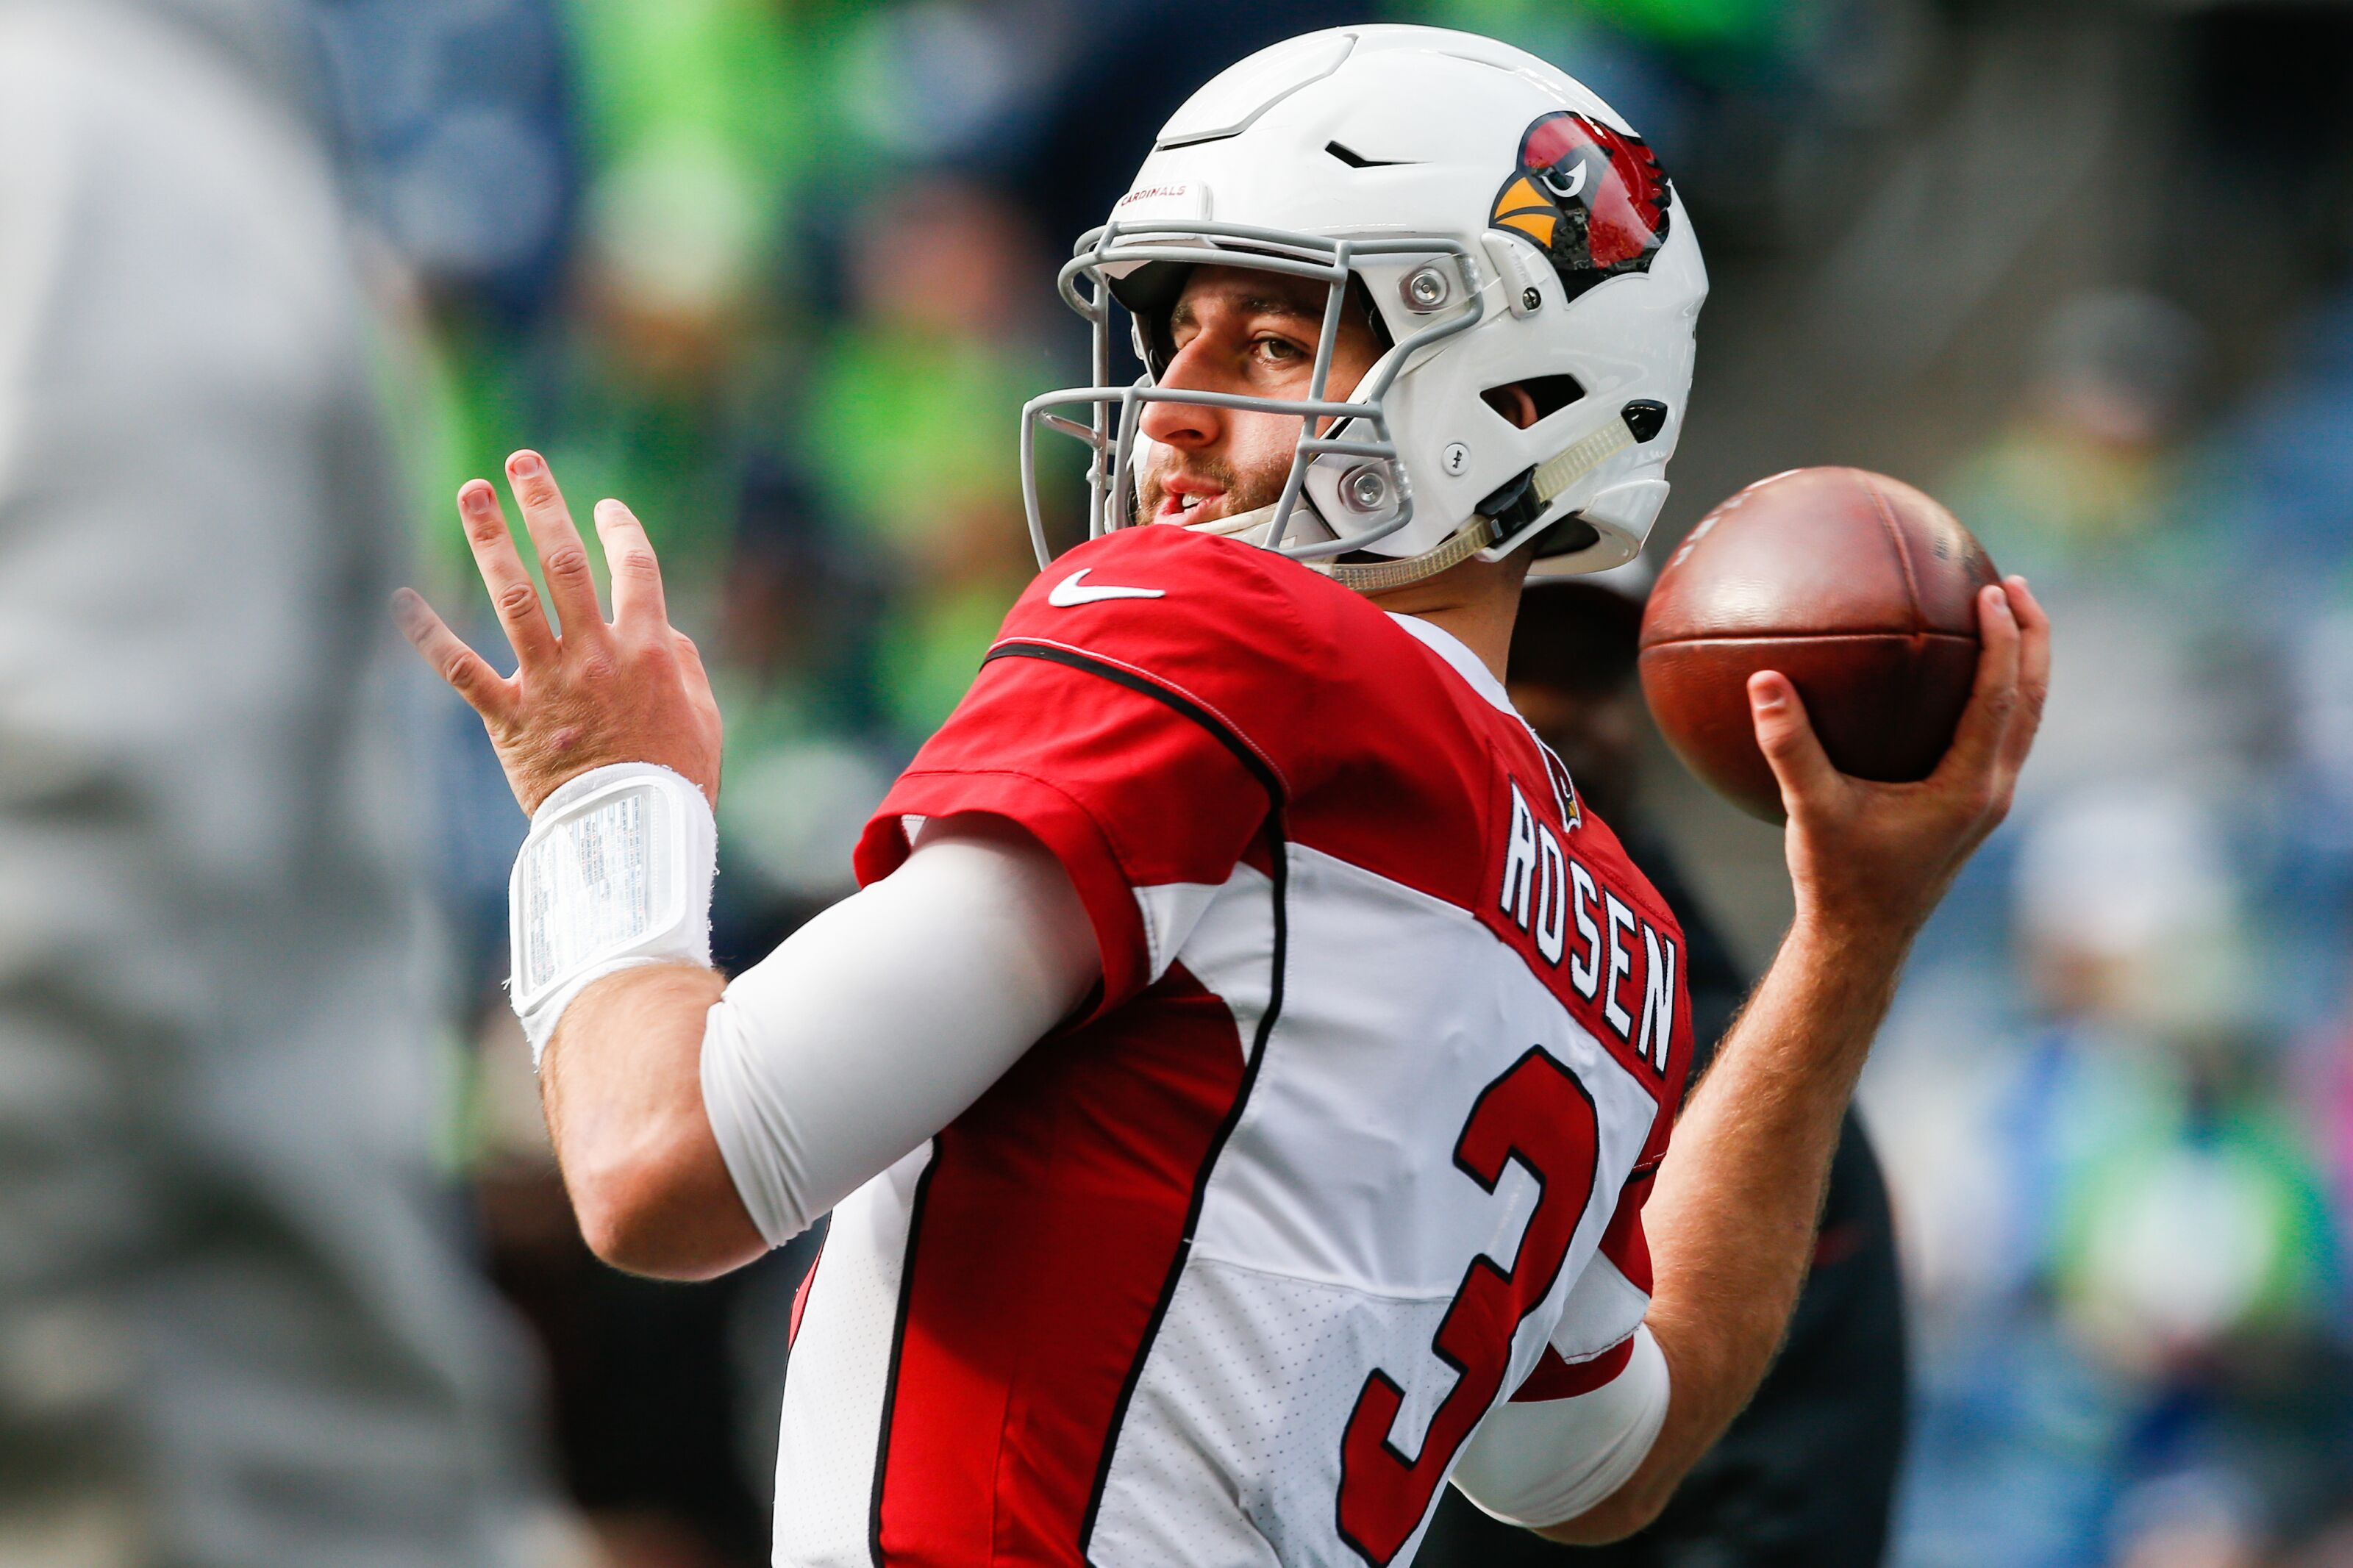 a685f0c3 New York Giants: Why the Giants should trade for Josh Rosen